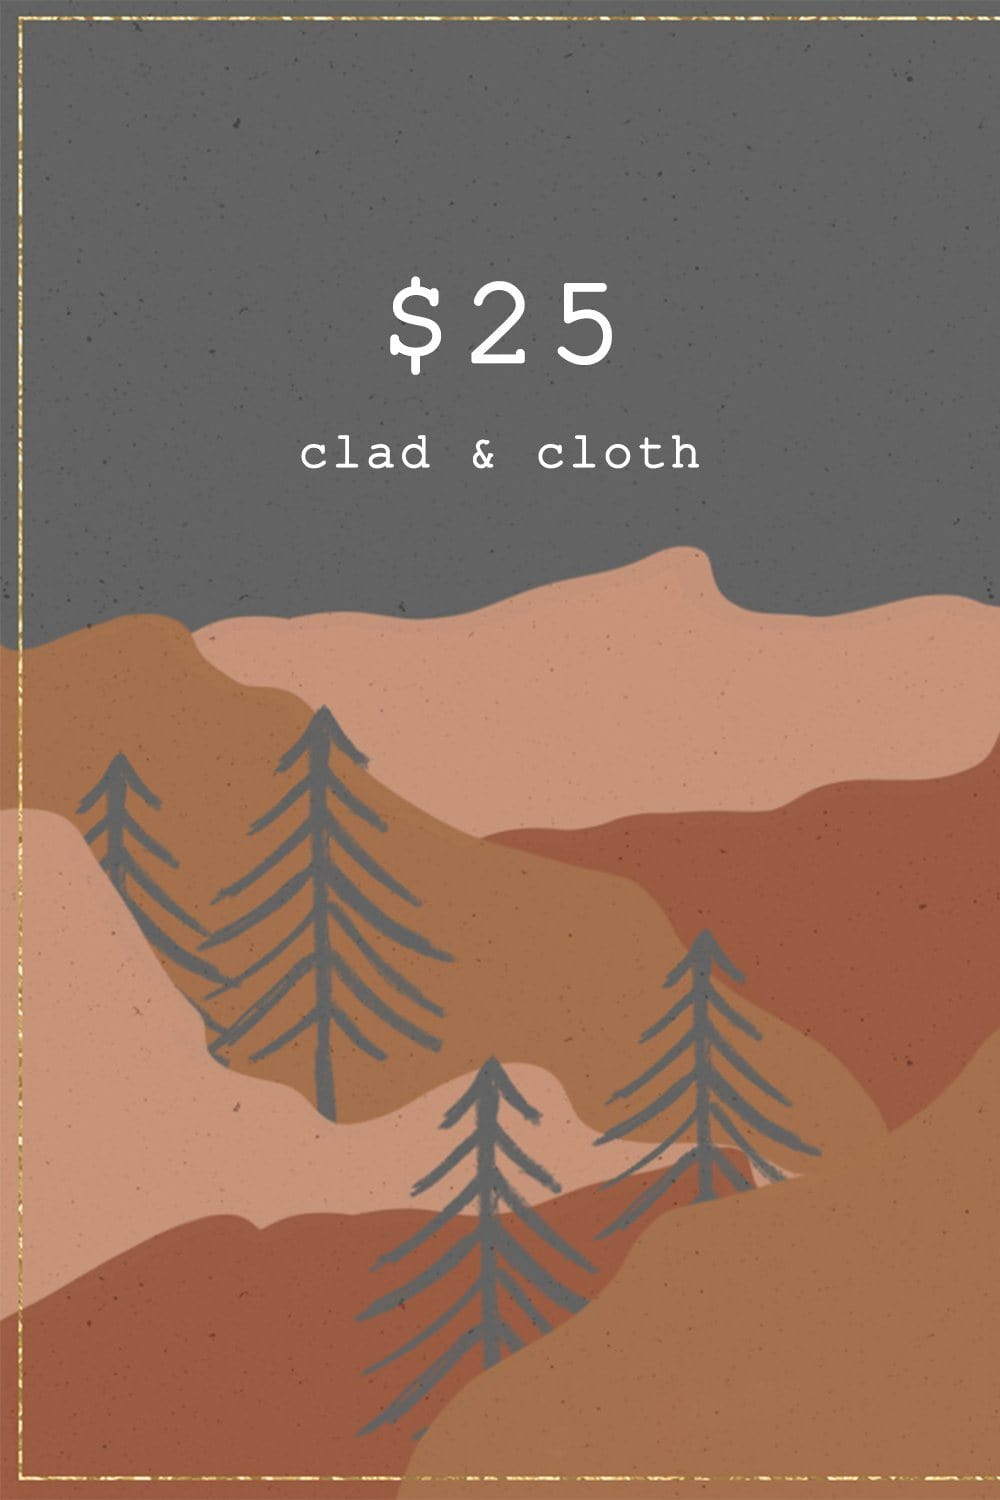 CLAD & CLOTH Gift Card - $25 Gift Card n/a Clad and Cloth